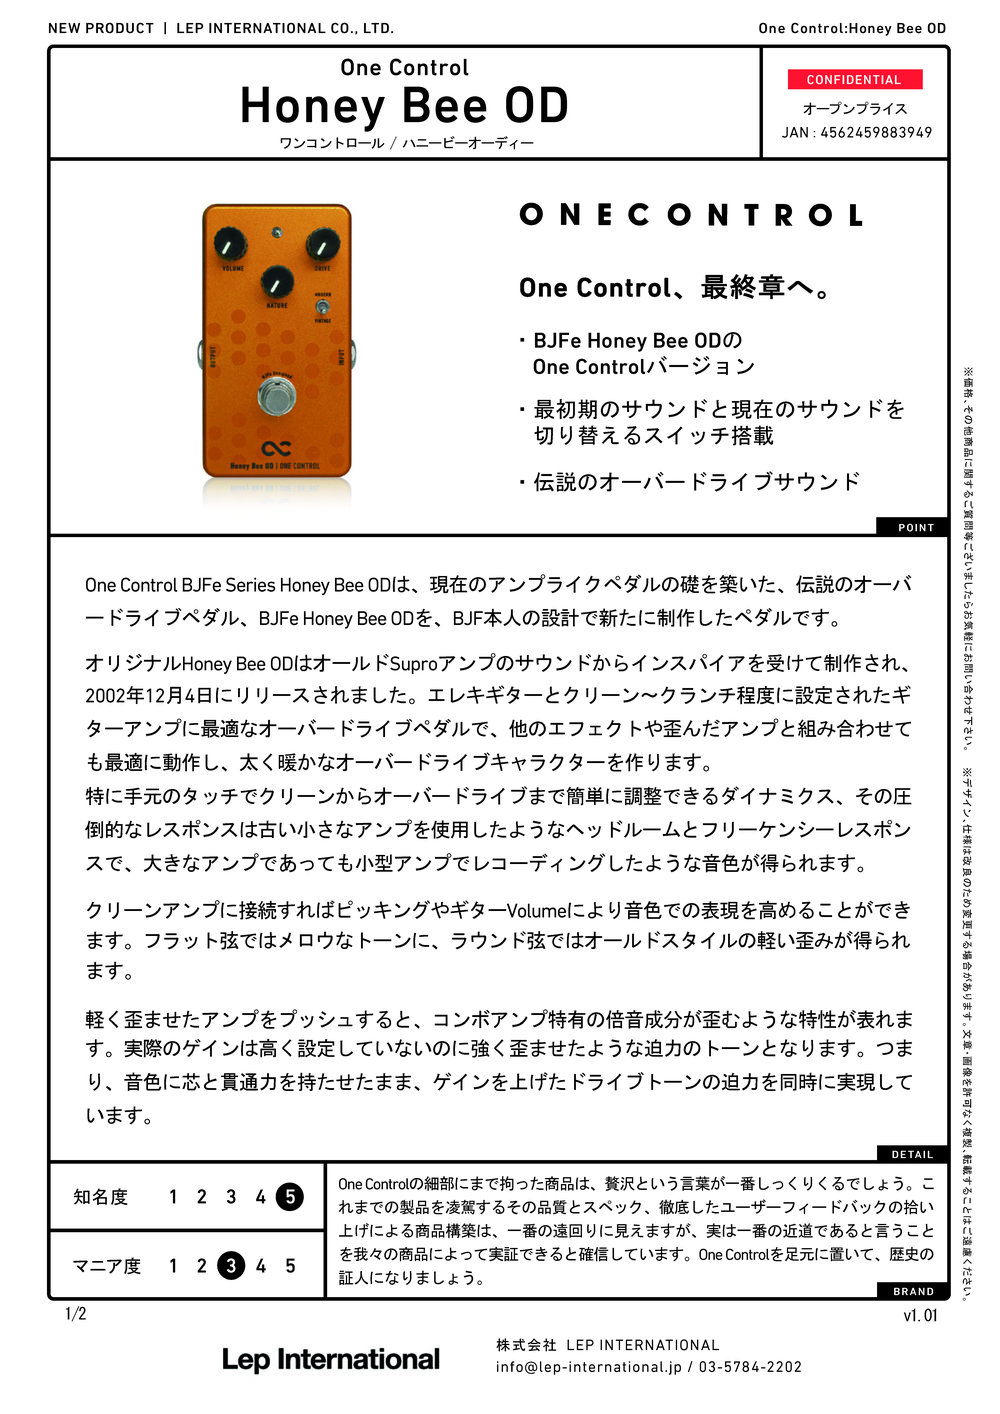 onecontrol honeybeeod v1.01_ページ_1.jpg